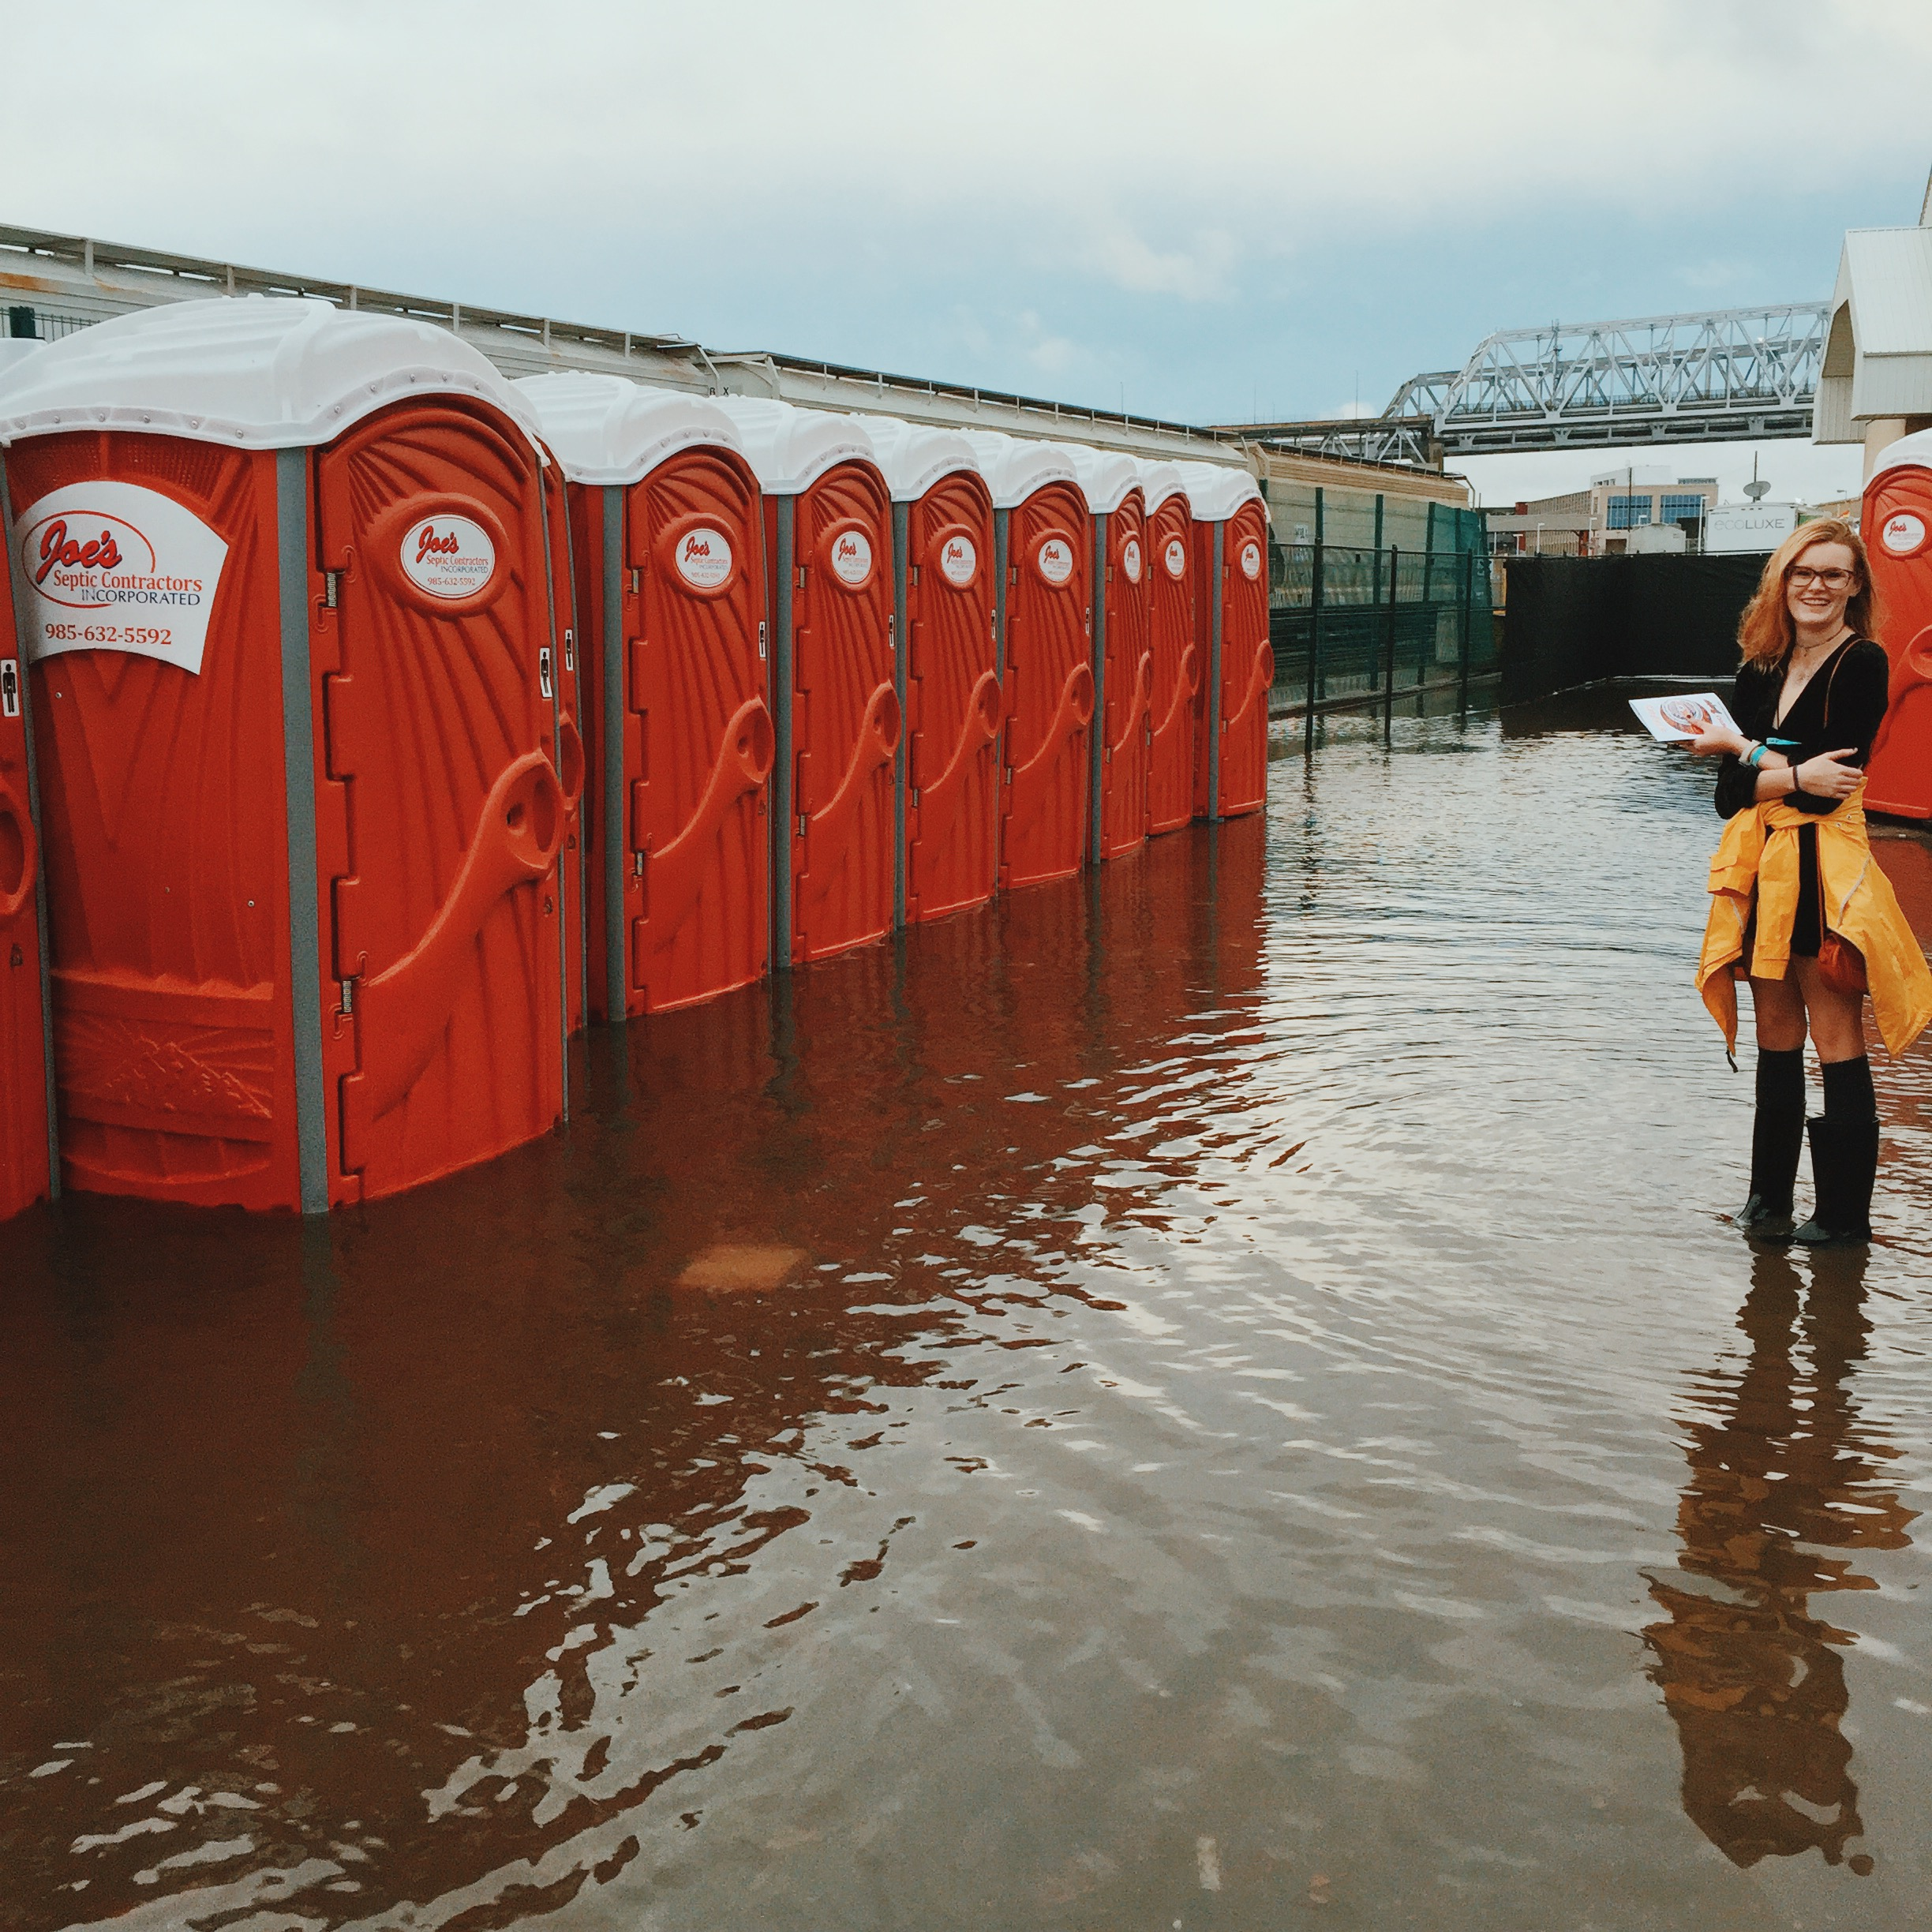 My friend Darby waiting to use a bathroom. New Orleans was pretty flooded from all the rain. This was real nasty.